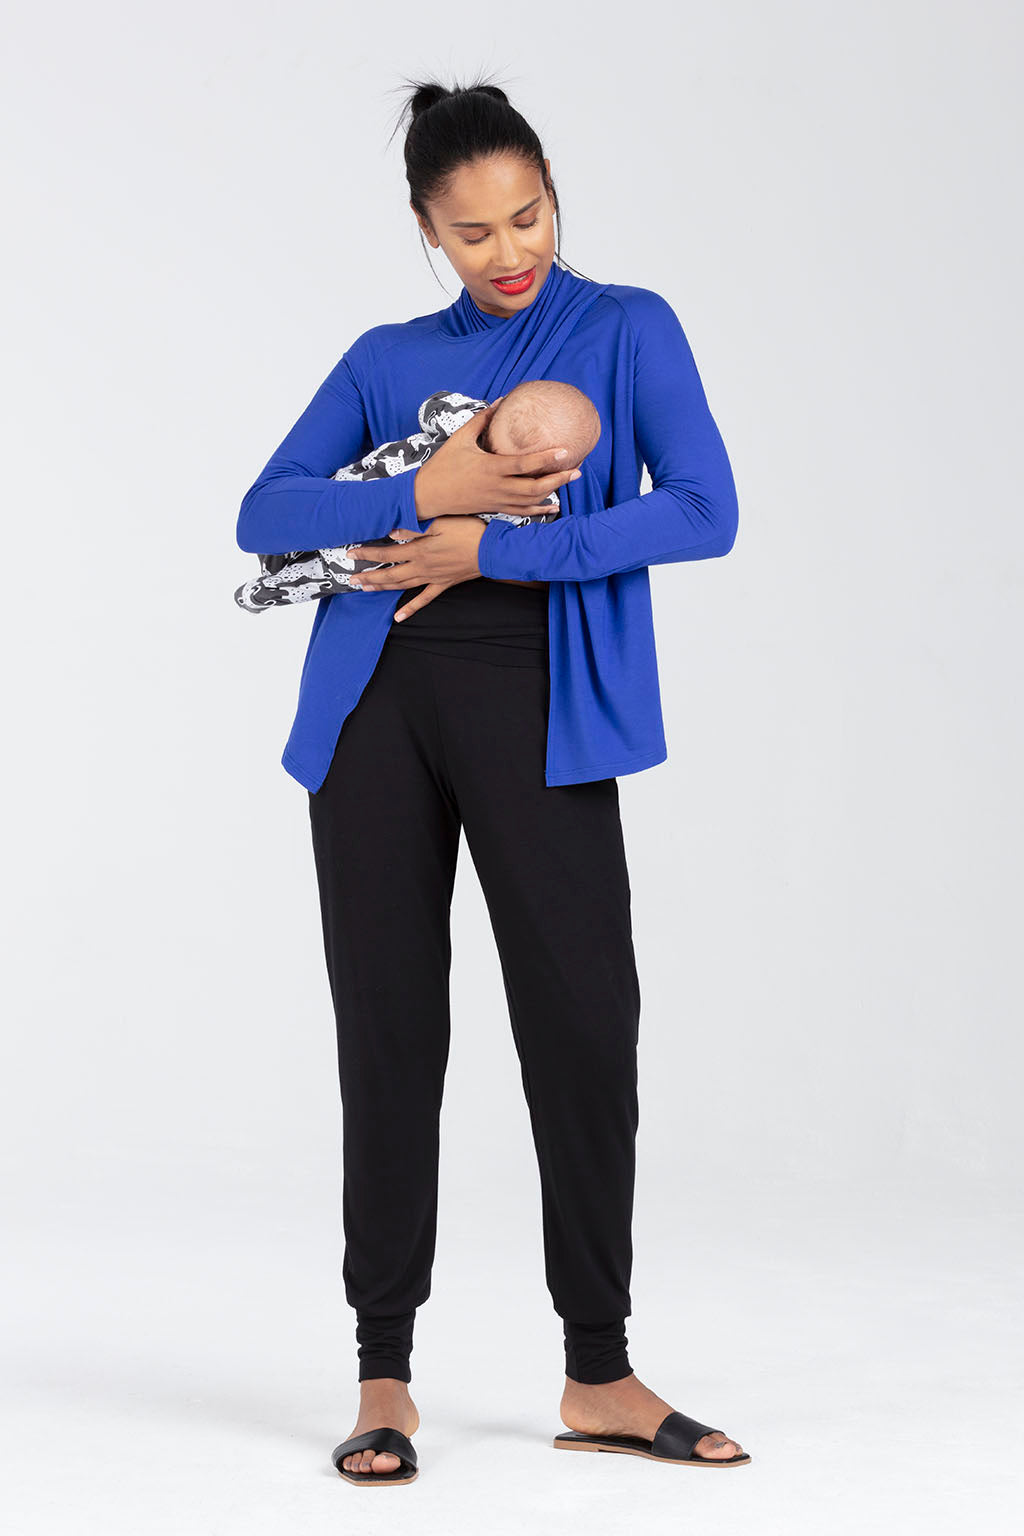 Long Sleeve Nursing Top in Blue - Breastfeeding access - Marie by Sarka London - Front View